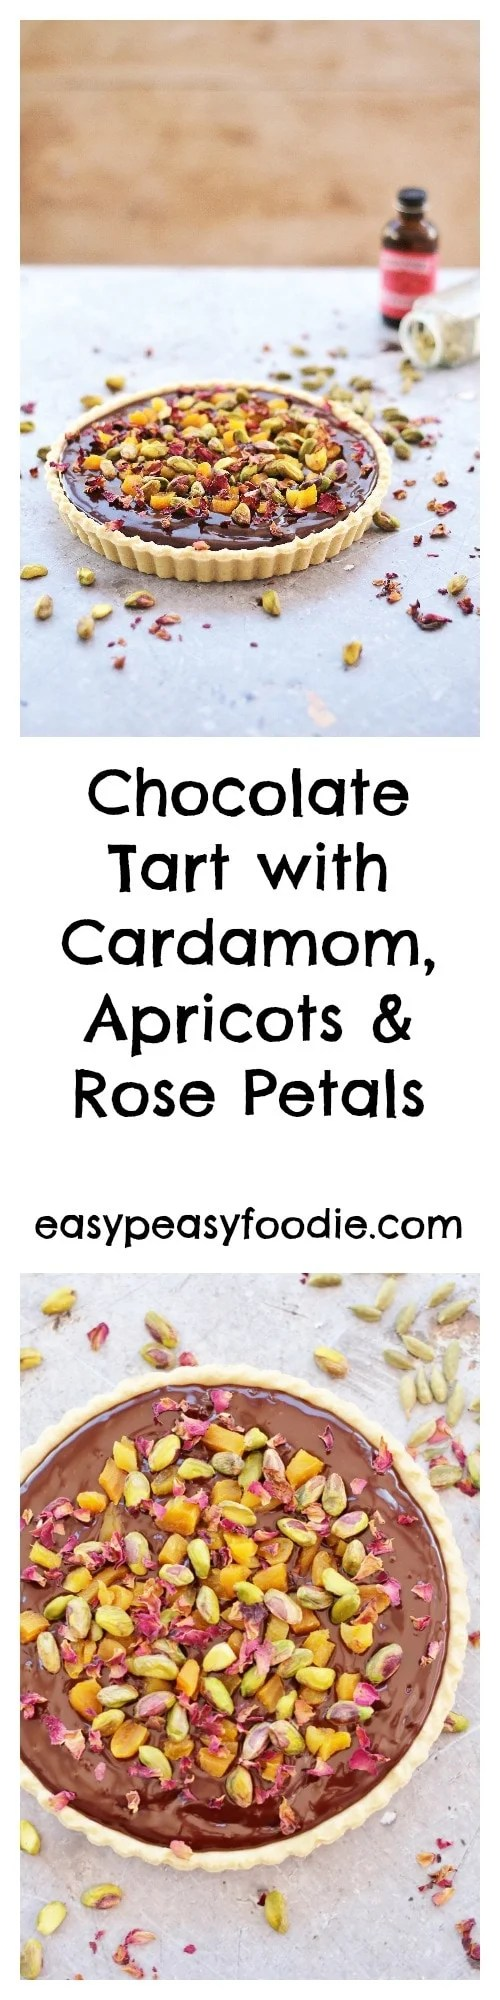 Rich, decadent and totally moreish, this middle eastern inspired Chocolate Tart with Cardamom, Apricots and Rose Petals is perfect for Valentine's Day or any day when you want a showstopping dessert without the hassle! #valentinesday #valentines #chocolatetart #roses #rosepetals #apricots #cardamom #dessert #easyentertaining #easypeasyfoodie